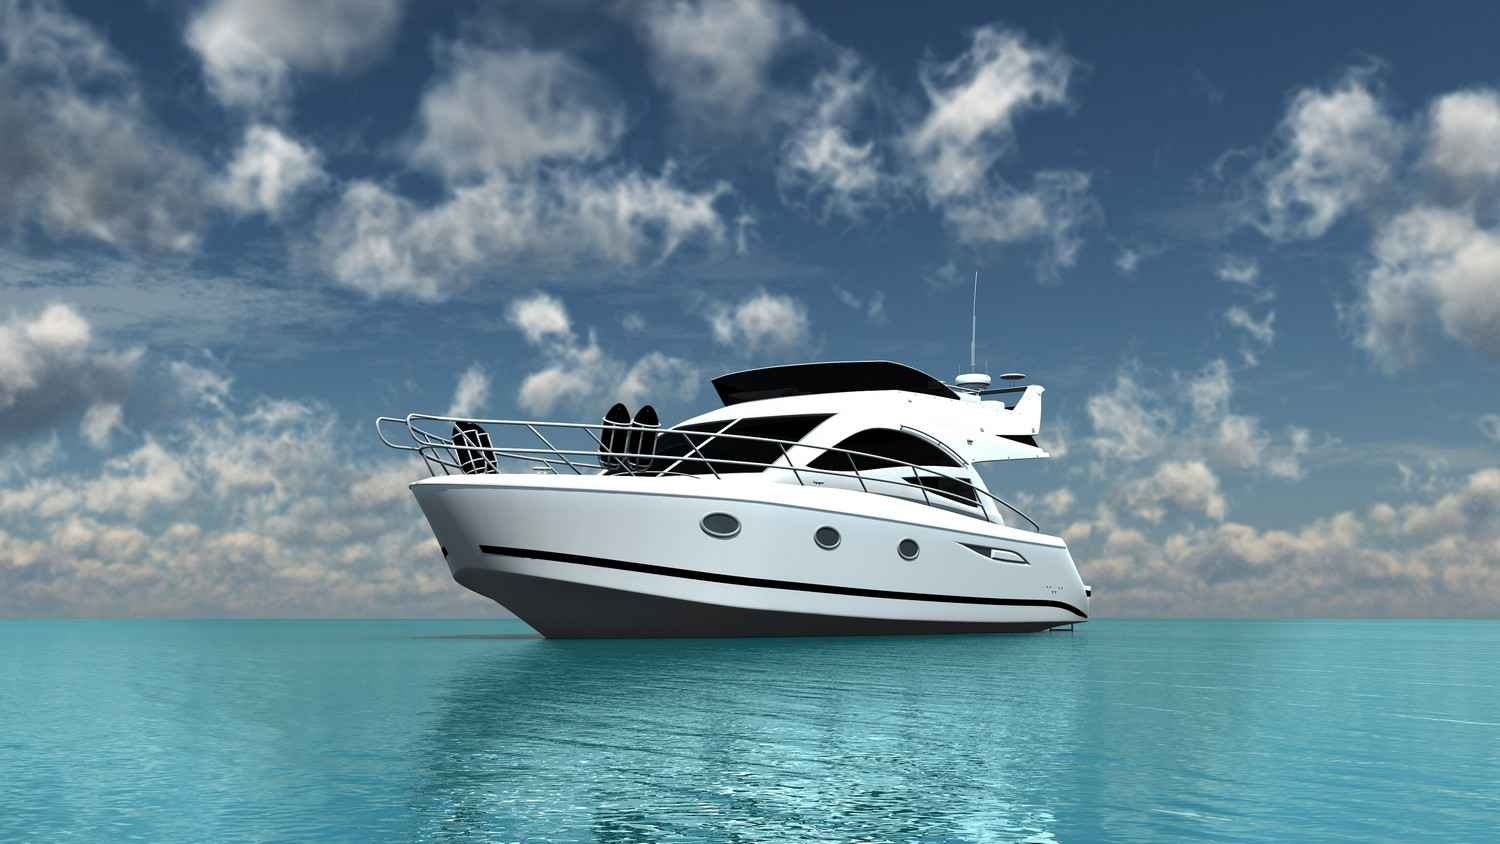 A beautiful yacht on the sea that is ready for a deep sea fishing trip.